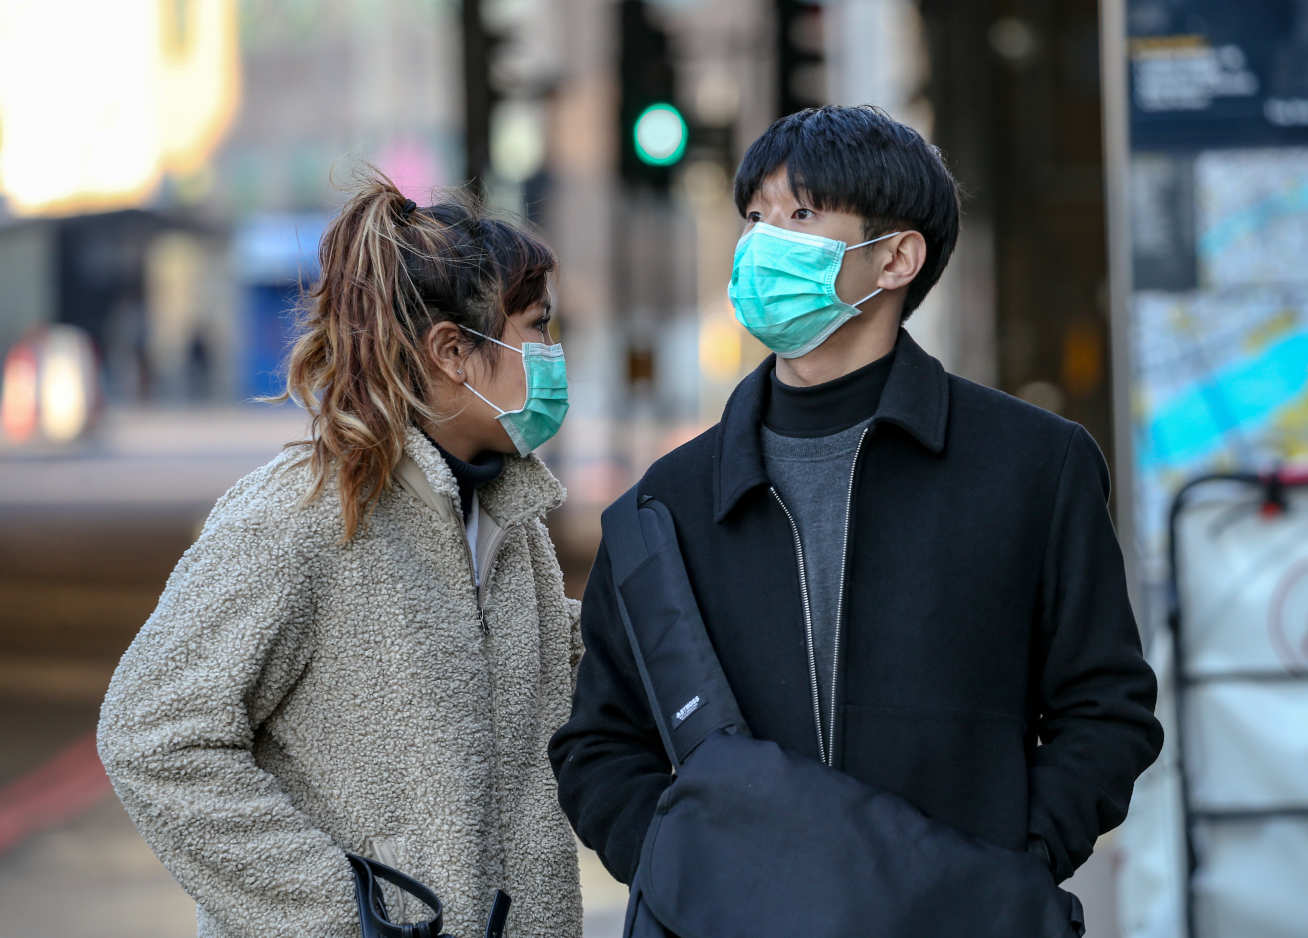 People wearing masks in central London